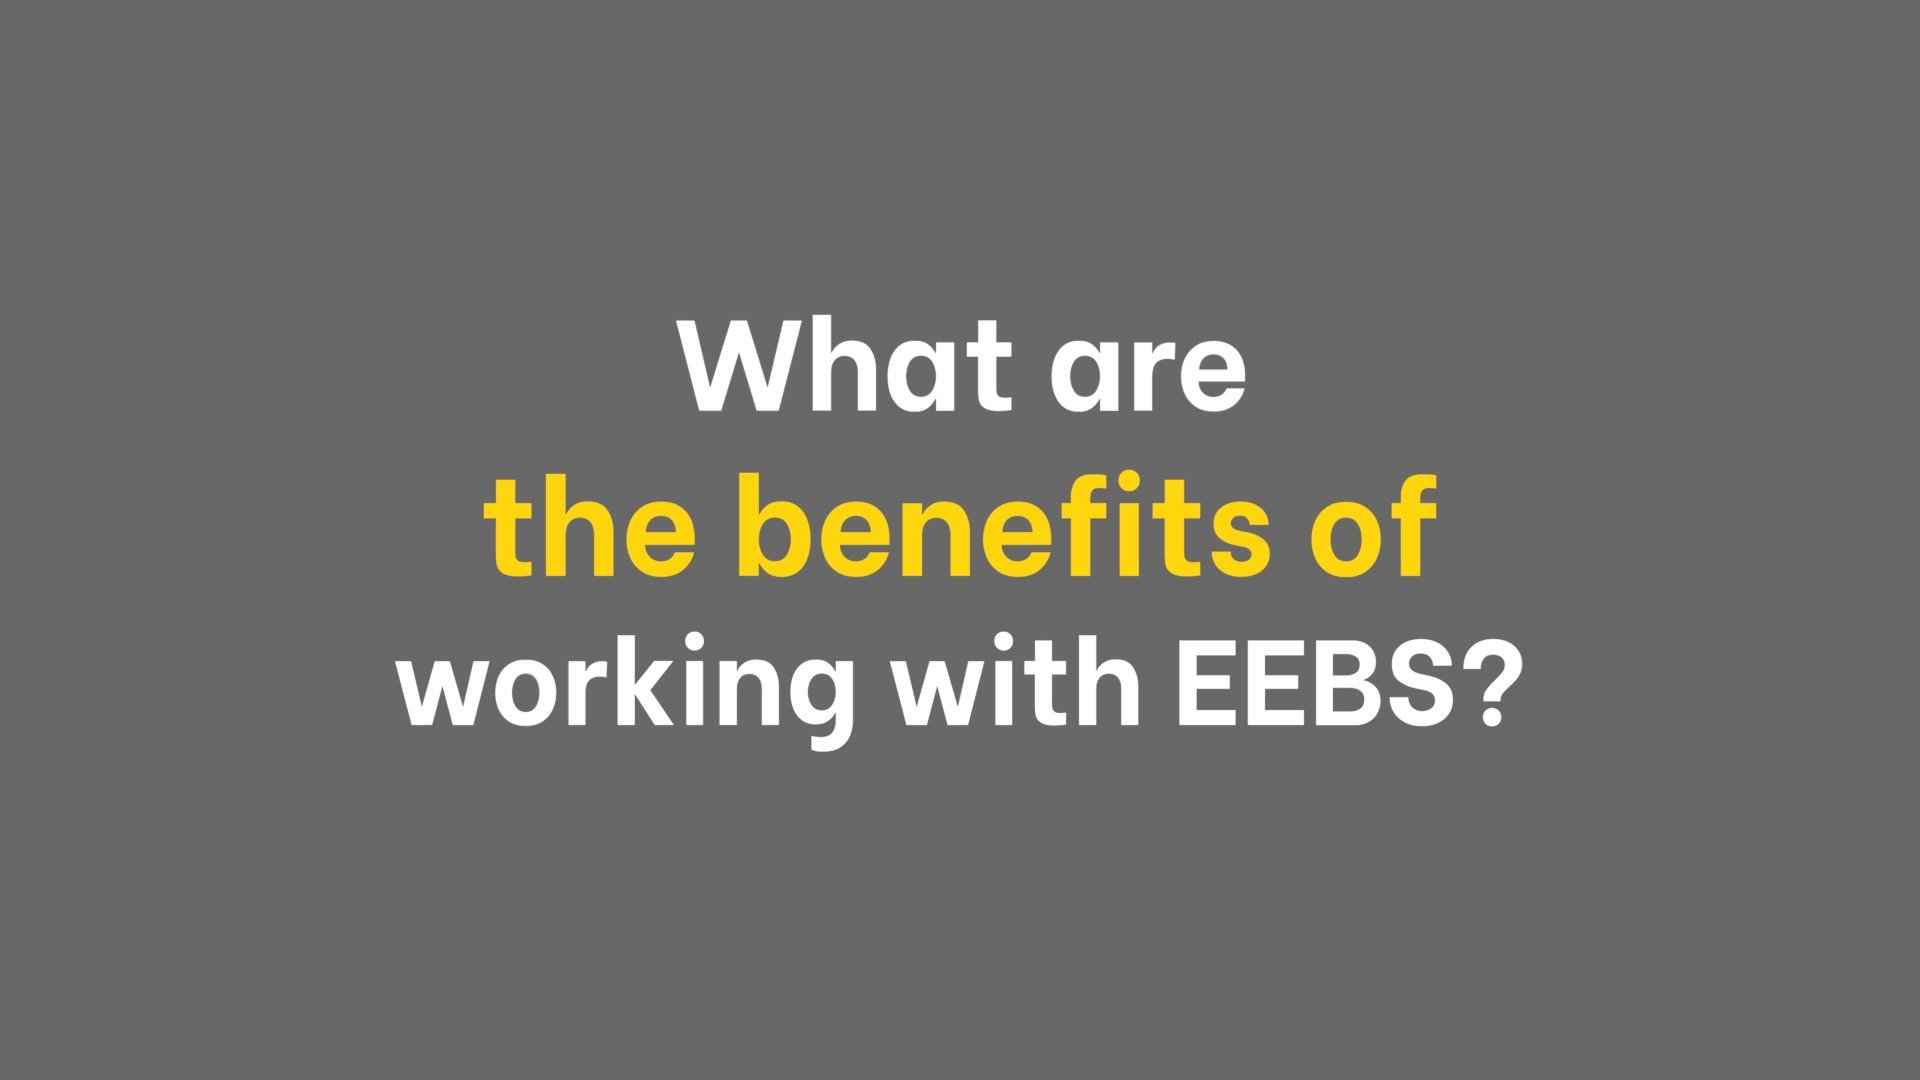 What are the benefits of working with EEBS?